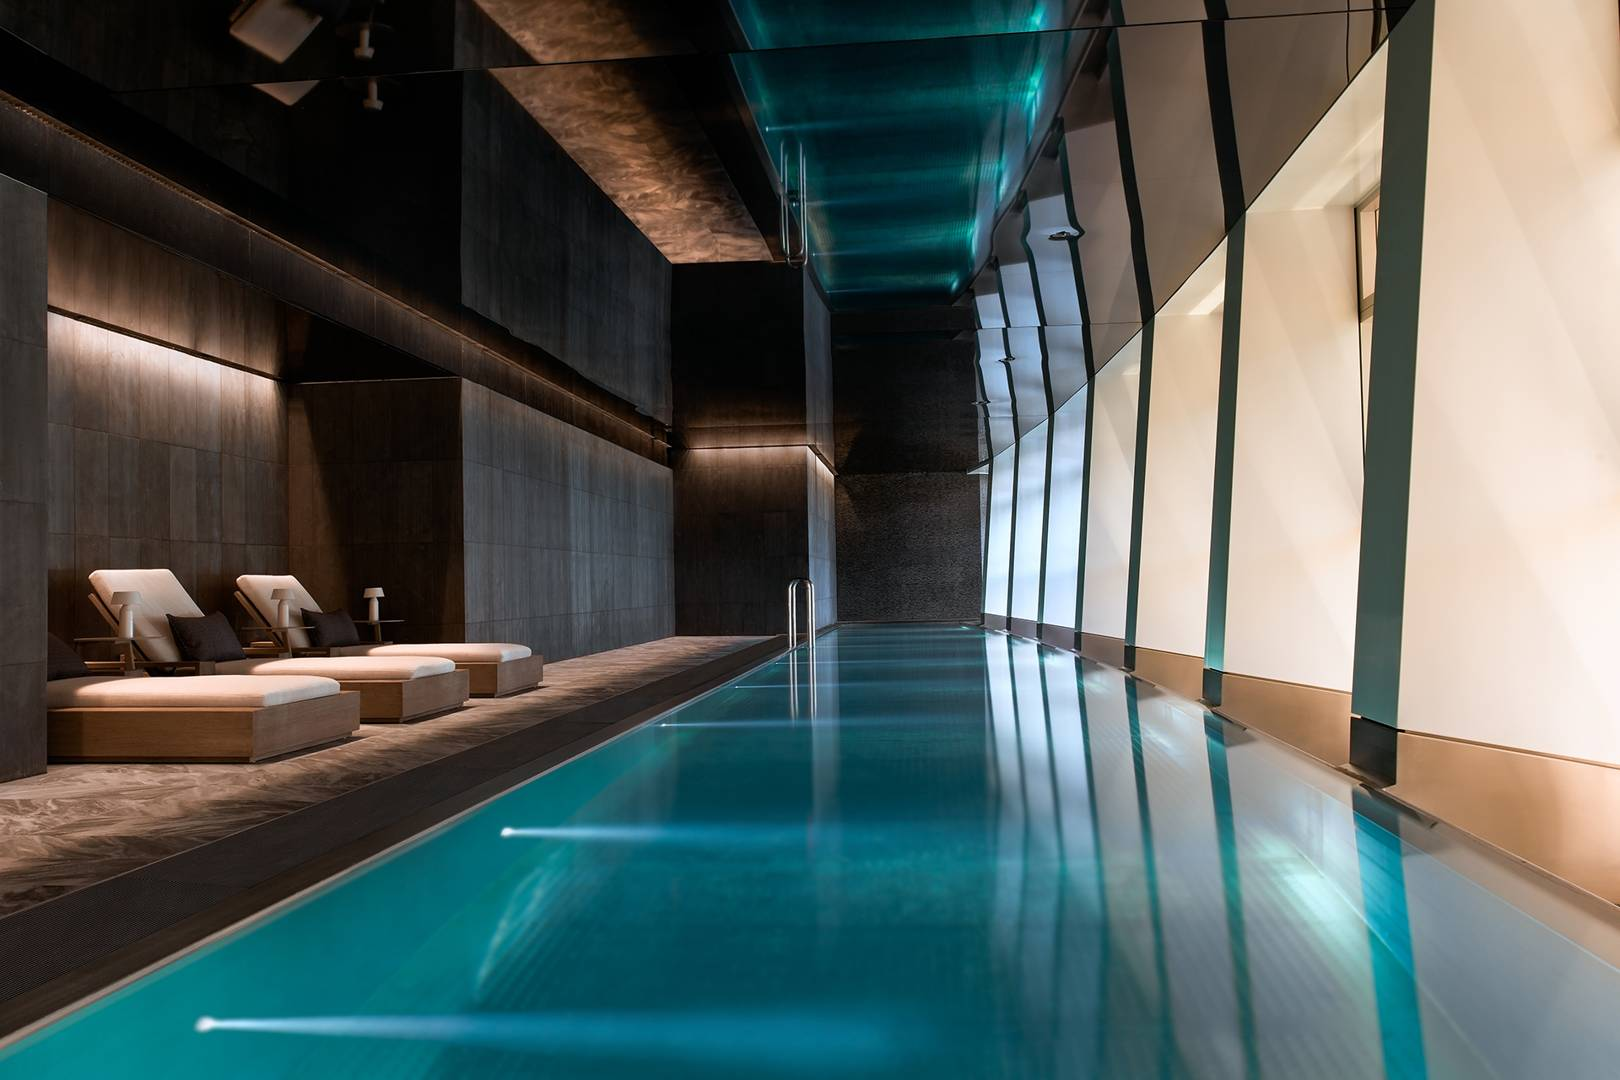 London, center, top pool, luxury, Embassy Gardens, Nine Elms, south London, aparment, Aquatic, arm race, private swimming pool, pool, billionaire, rich, luxurios, vip, lifestlye,